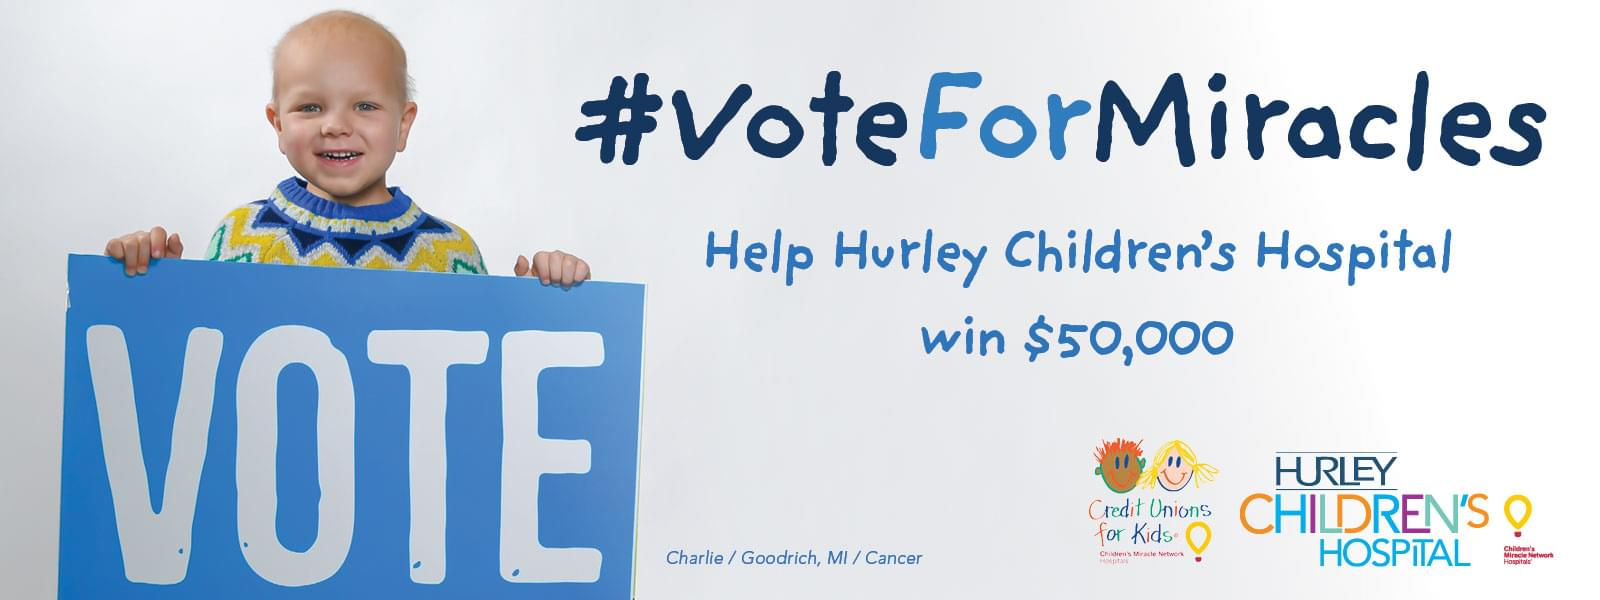 You can help bring $50,000 to Flint! #VoteForMiracles